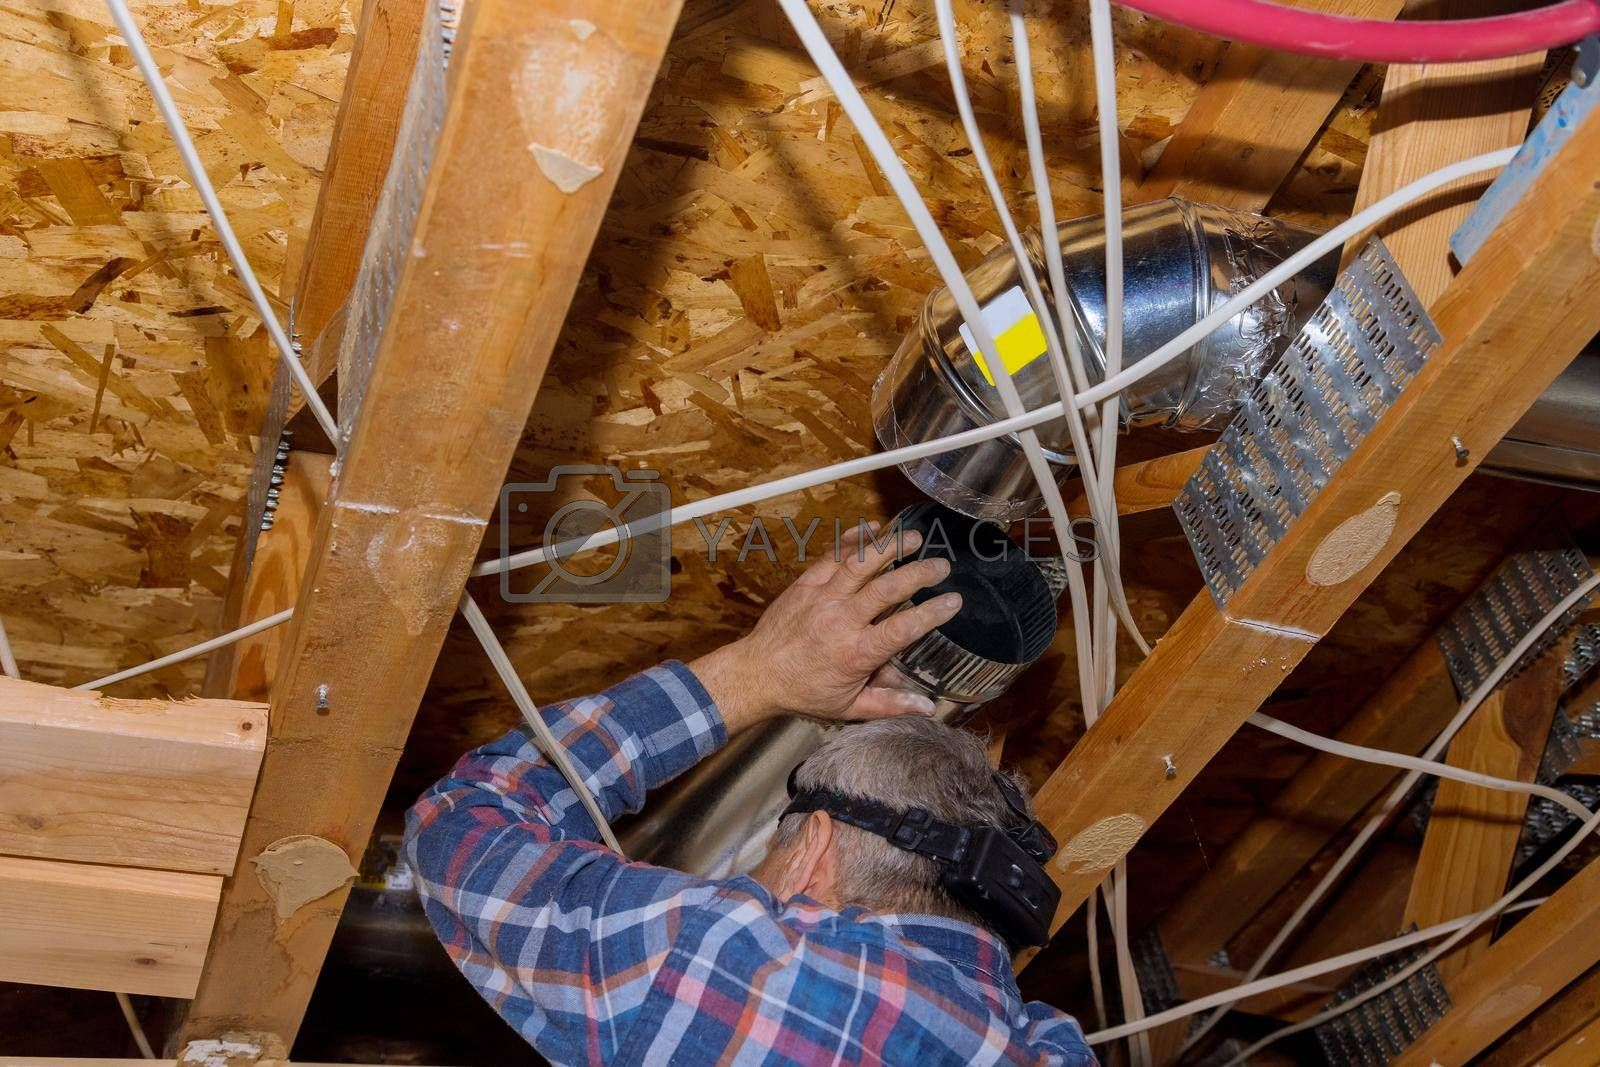 Remodelling home the installation in central conditioning a ceiling system HVAC duct ventilation pipes